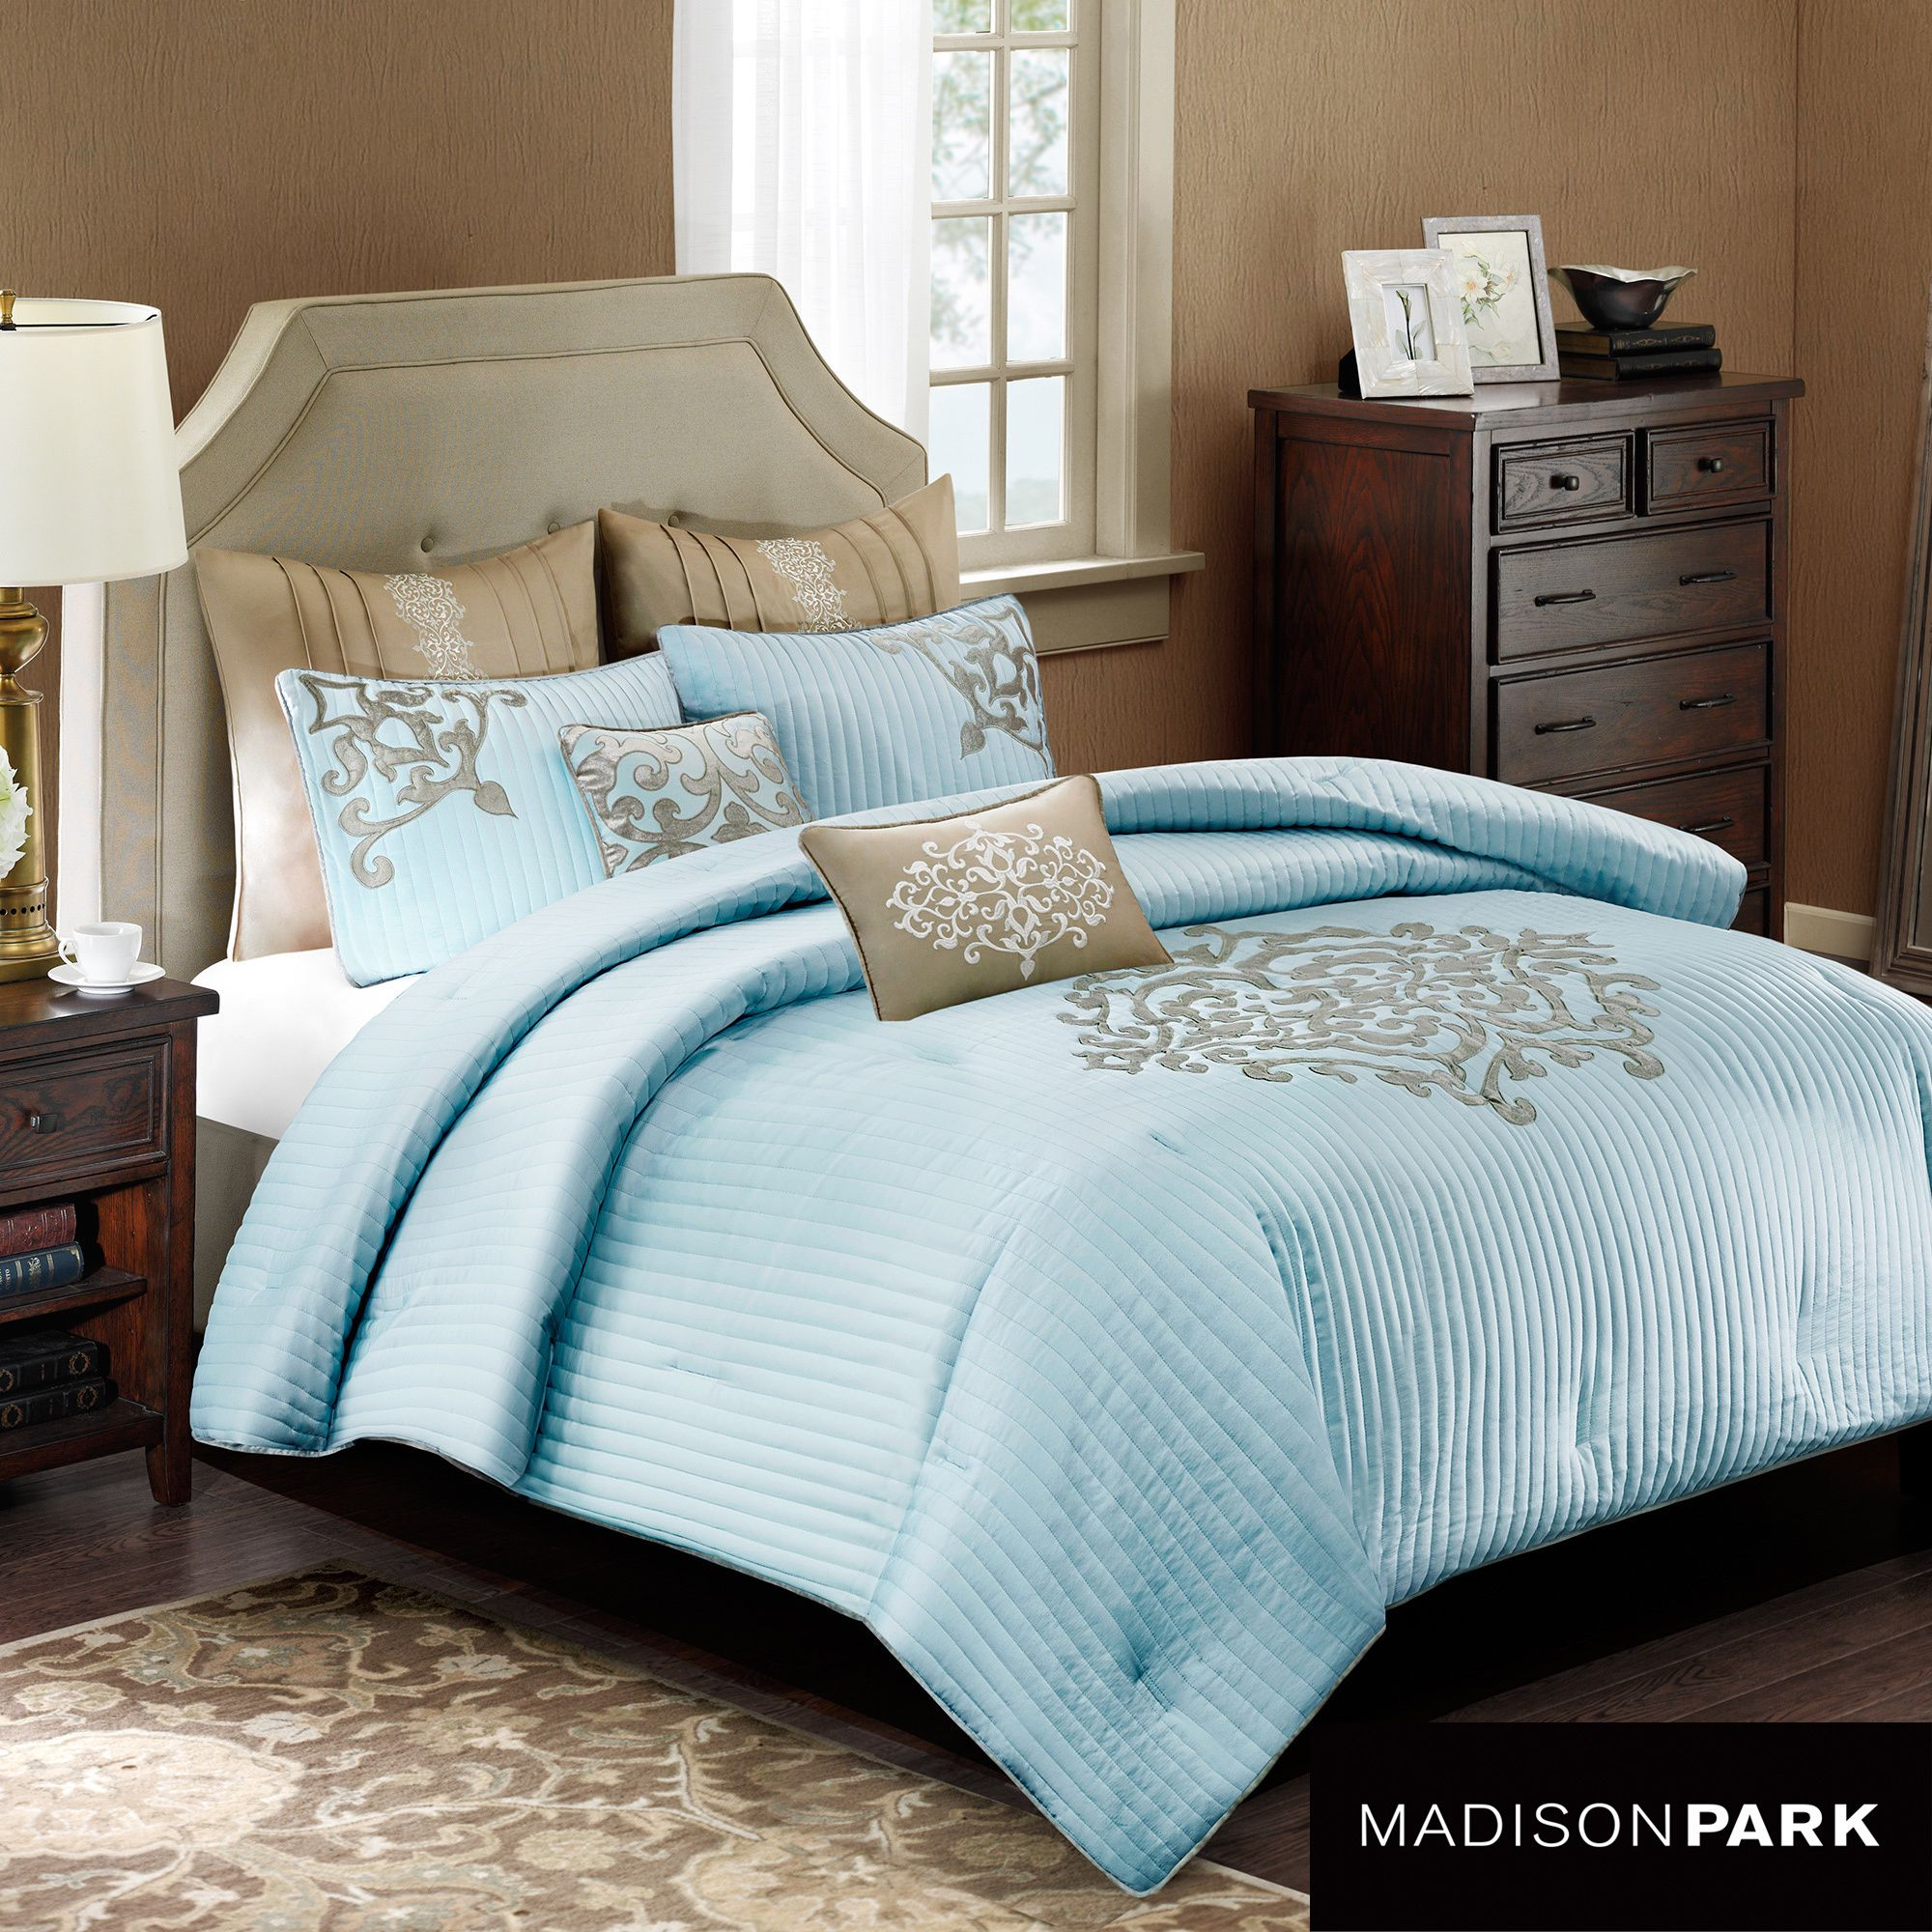 The Bennett comforter adds an elevated look to your bedroom with soft blue vertical stripes to create texture and a large damask print in the middle. A soft gray covers the reverse side of the comforter.